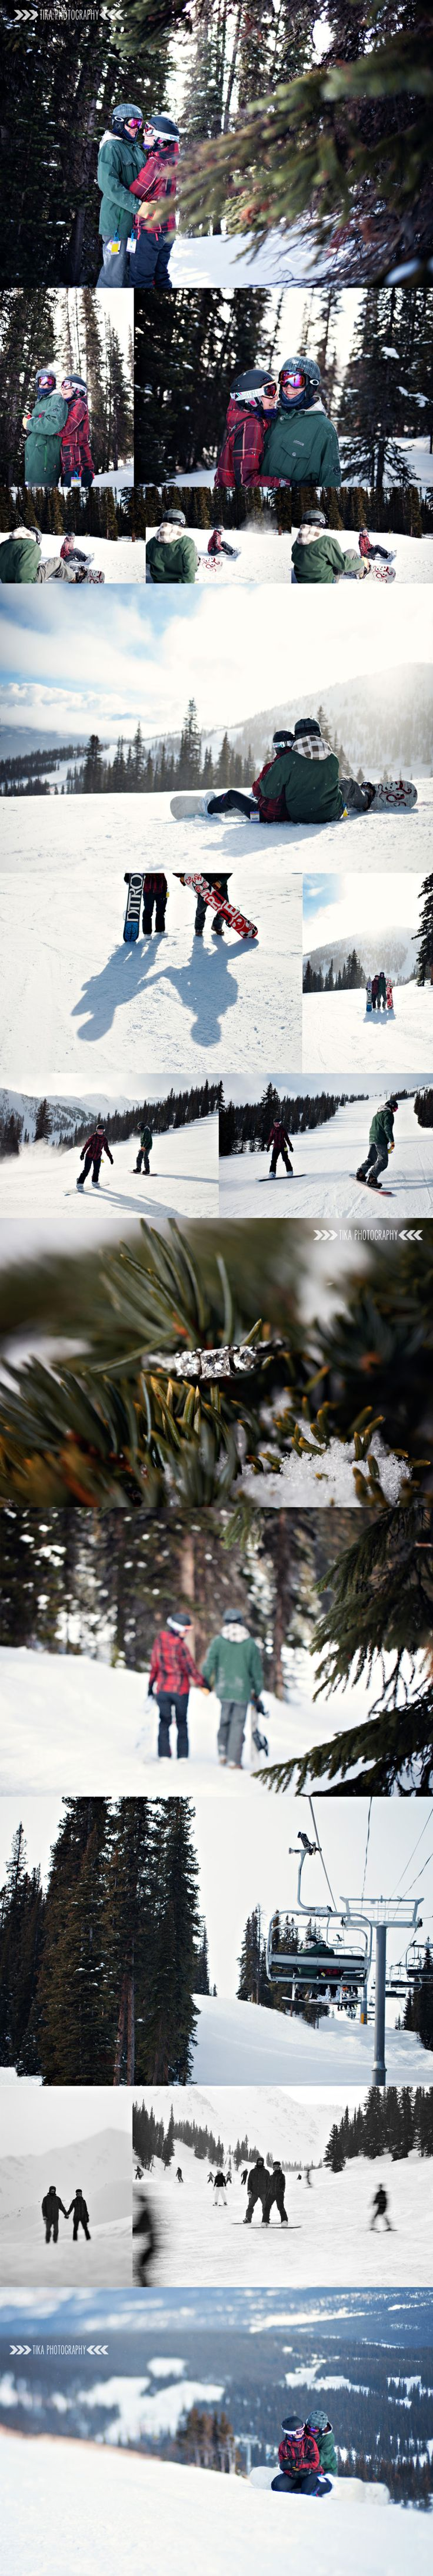 Jasper Marmot Basin snowboarding engagement session by TIKA Photography ~ Sherrie Ellis